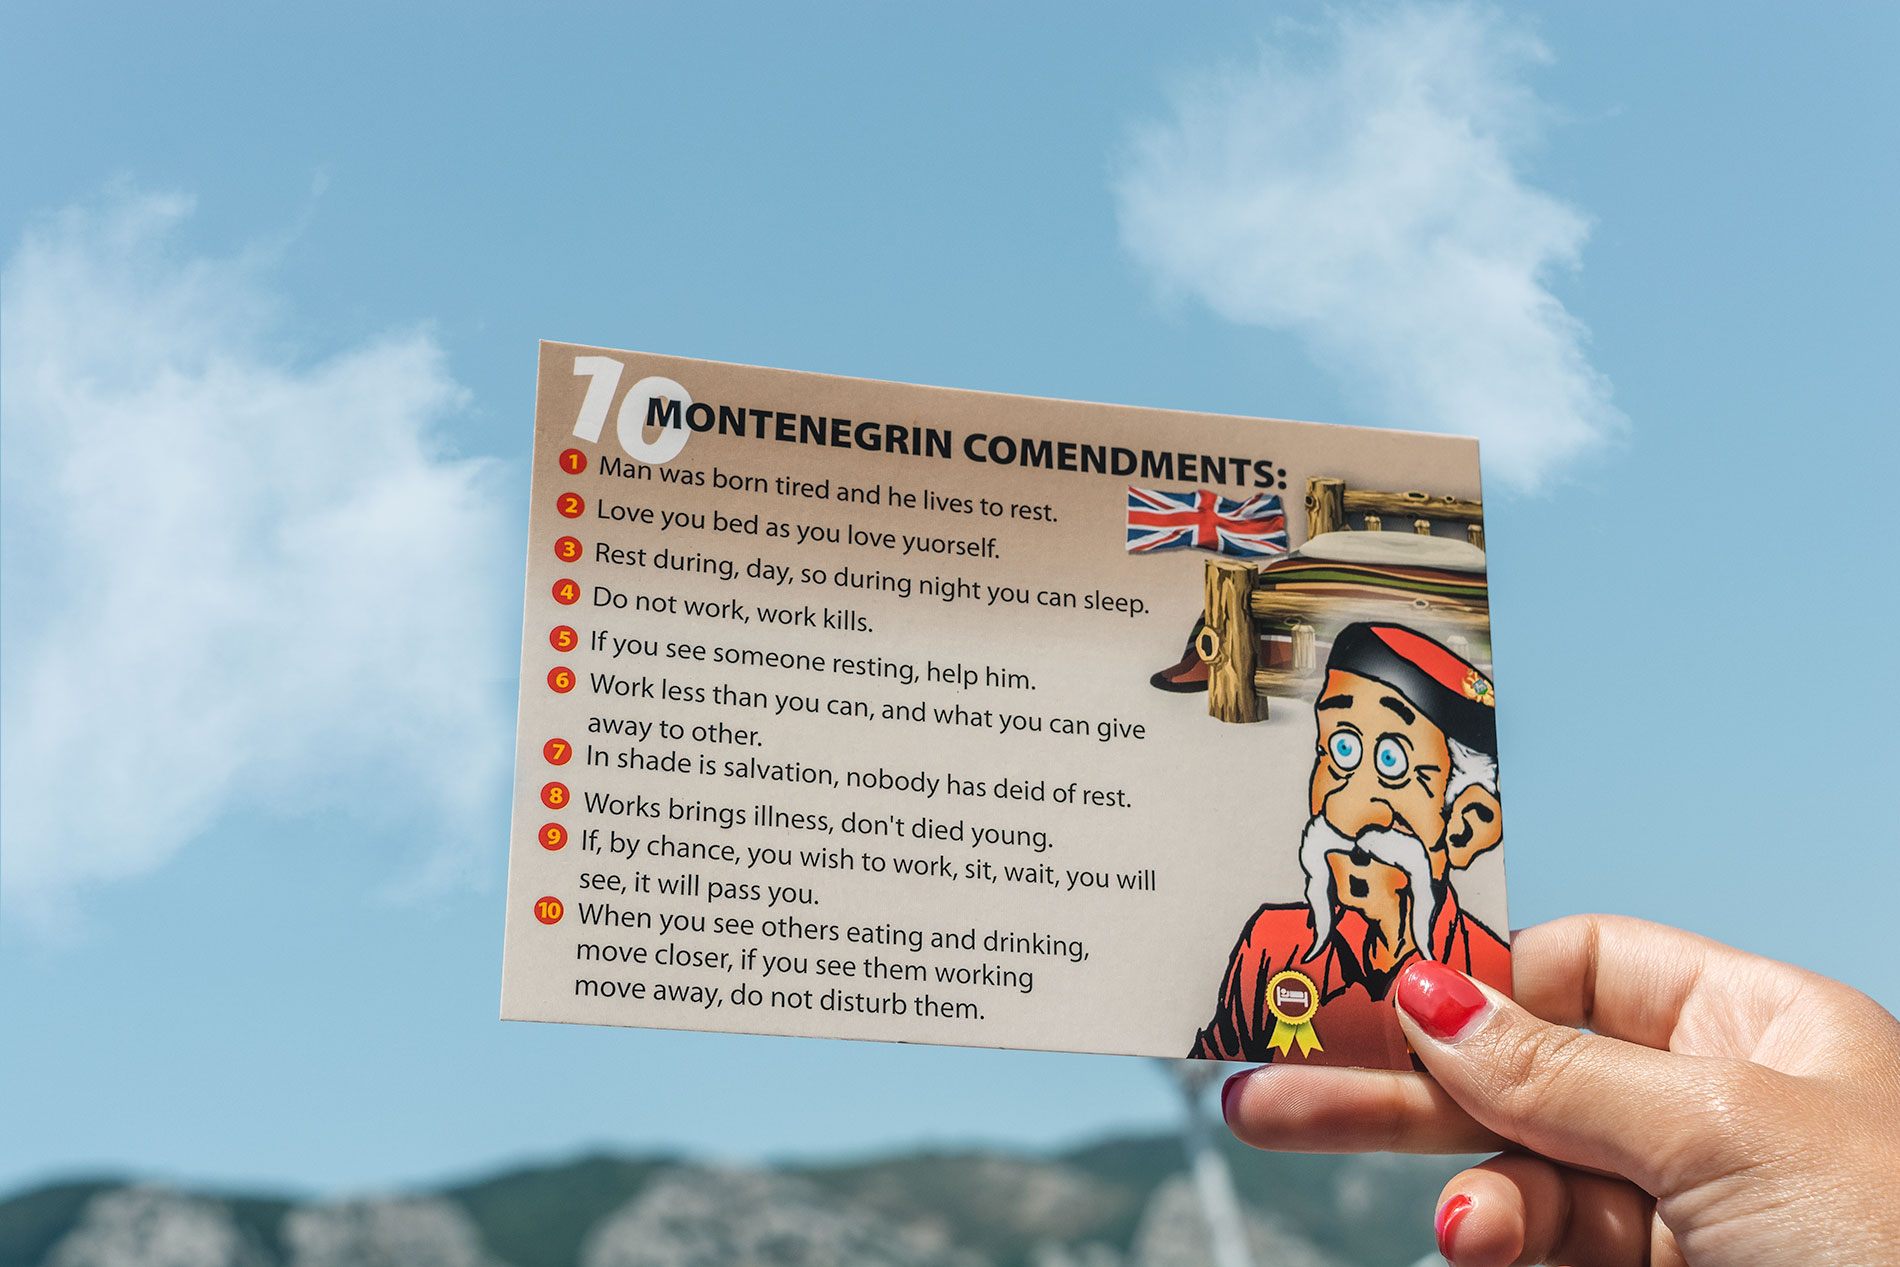 A postcards that satirically lists Montenegrin commandments